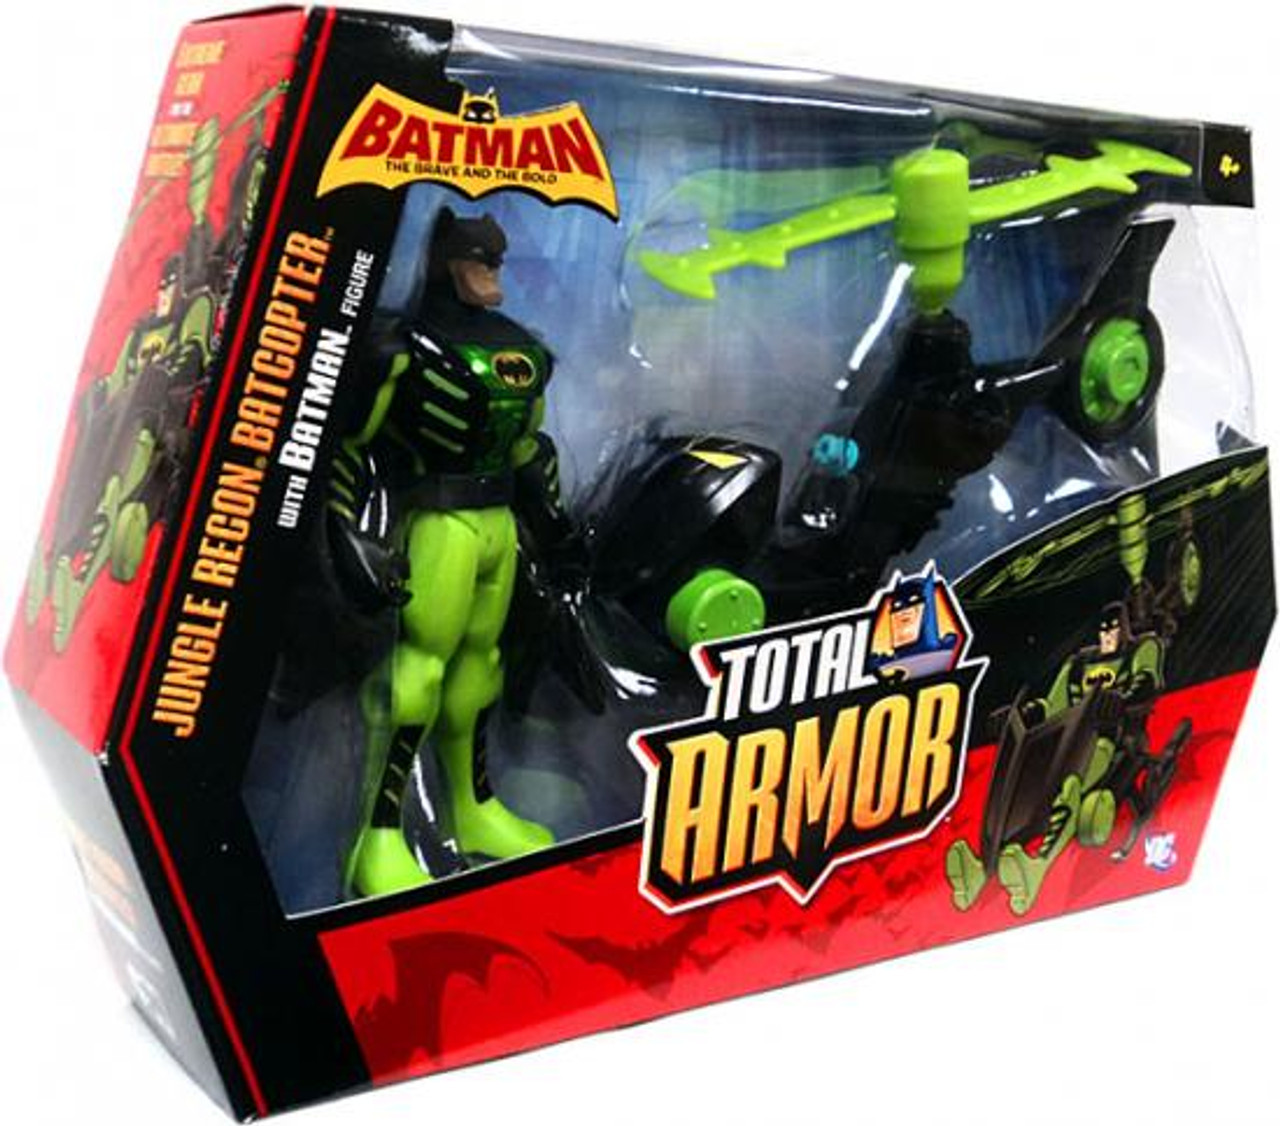 Batman The Brave and the Bold Total Armor Jungle Recon Batcopter Action Figure Set